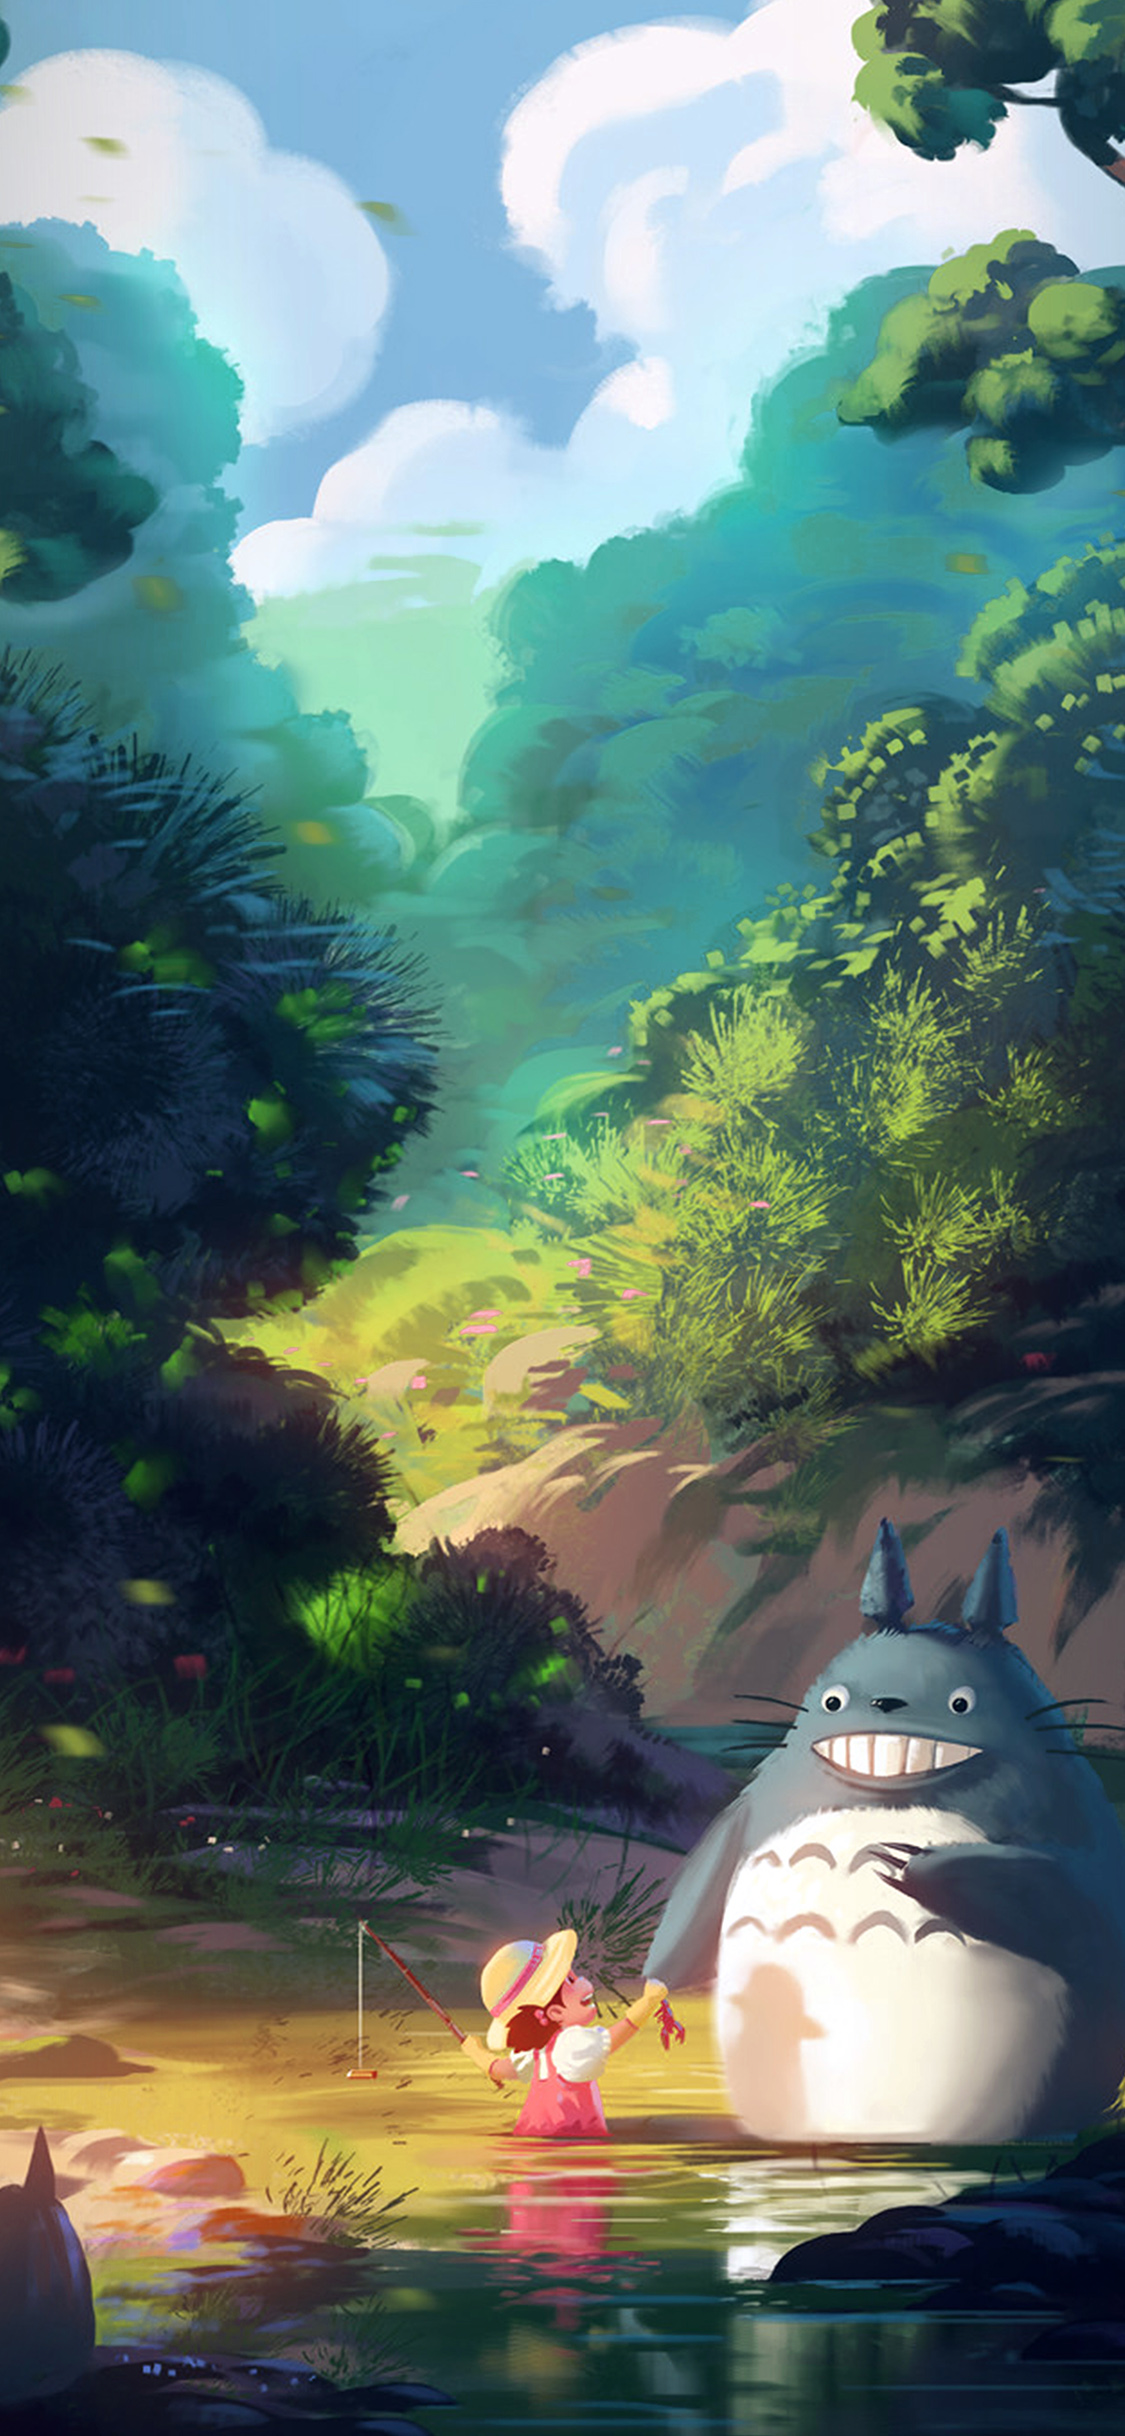 iPhonexpapers.com-Apple-iPhone-wallpaper-av34-totoro-anime-liang-xing-illustration-art-blue